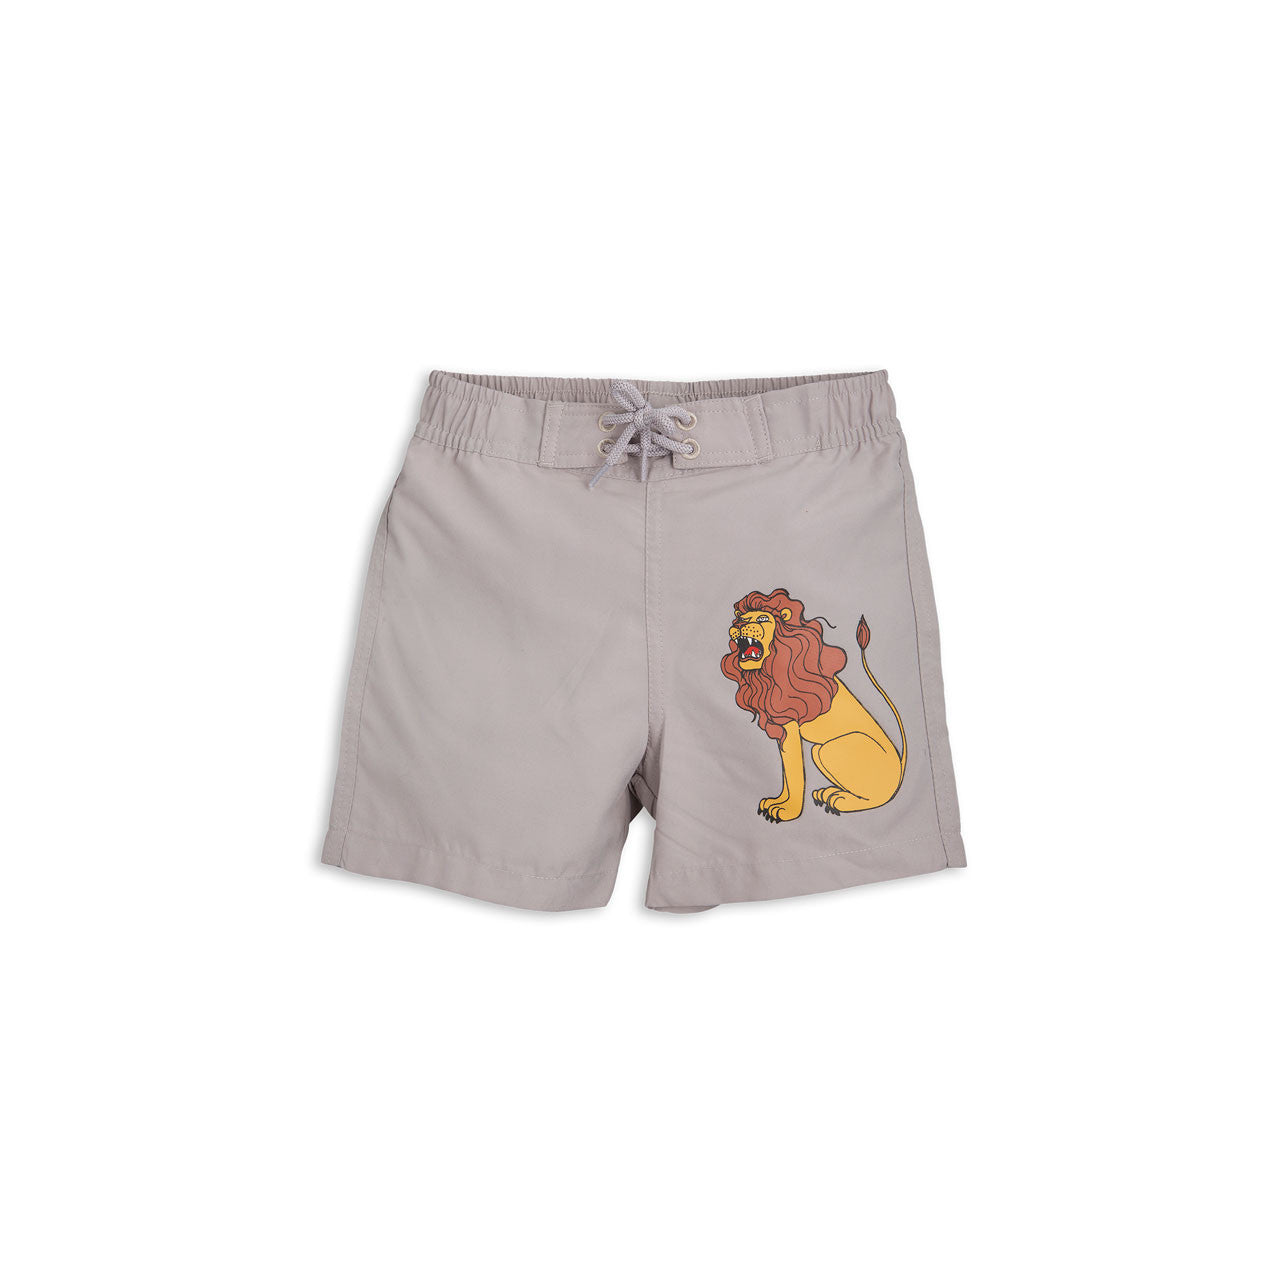 Mini Rodini Lion SP Swimshorts - Ladida